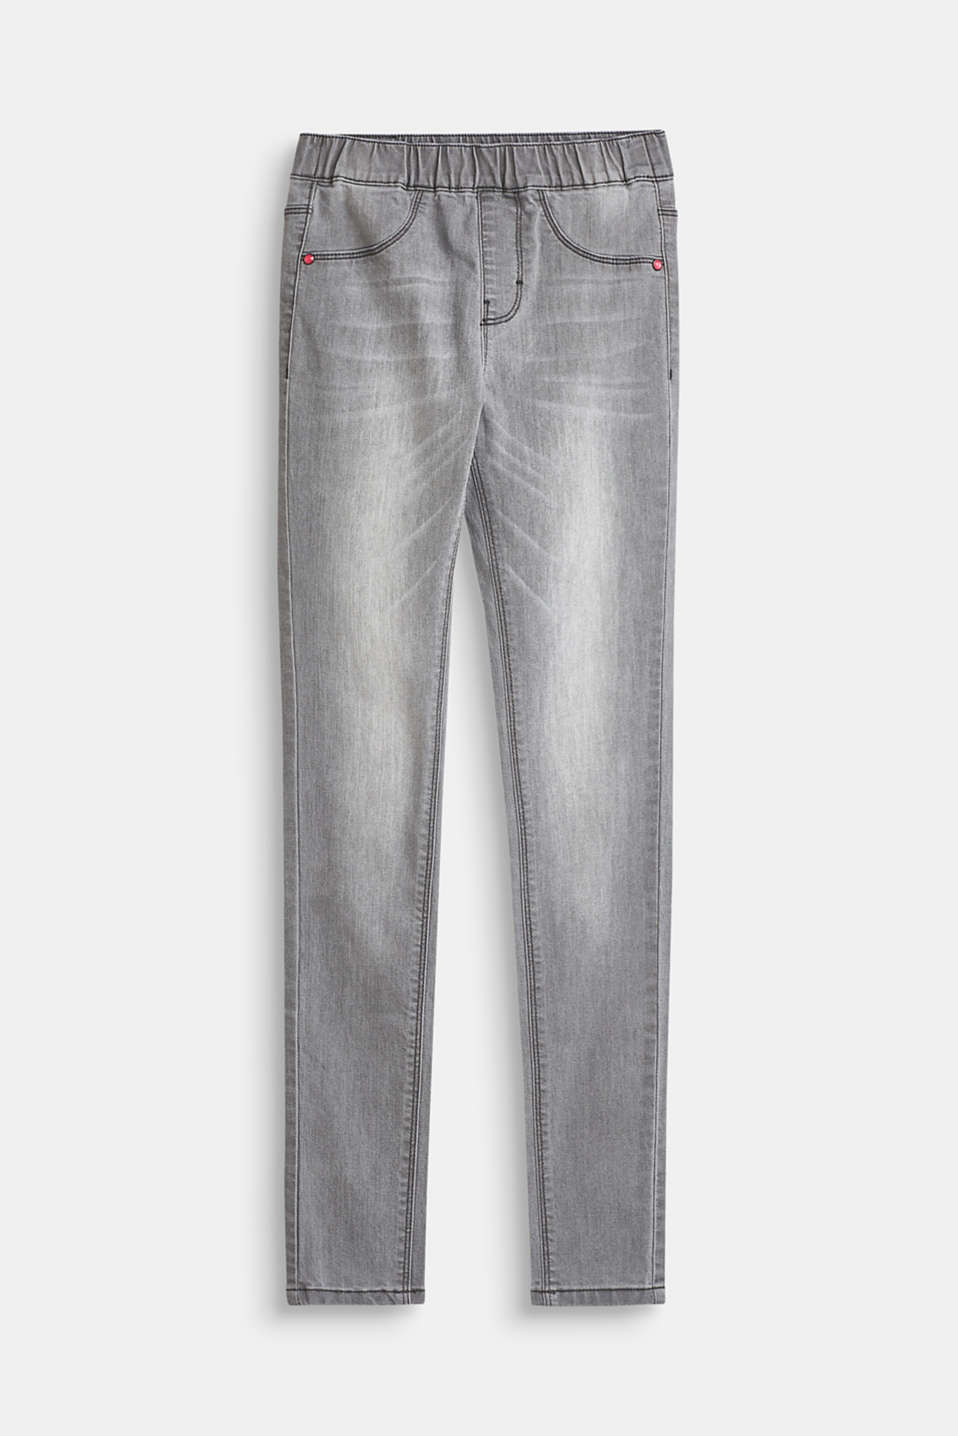 Esprit - Grey stretch jeans with an elasticated waistband